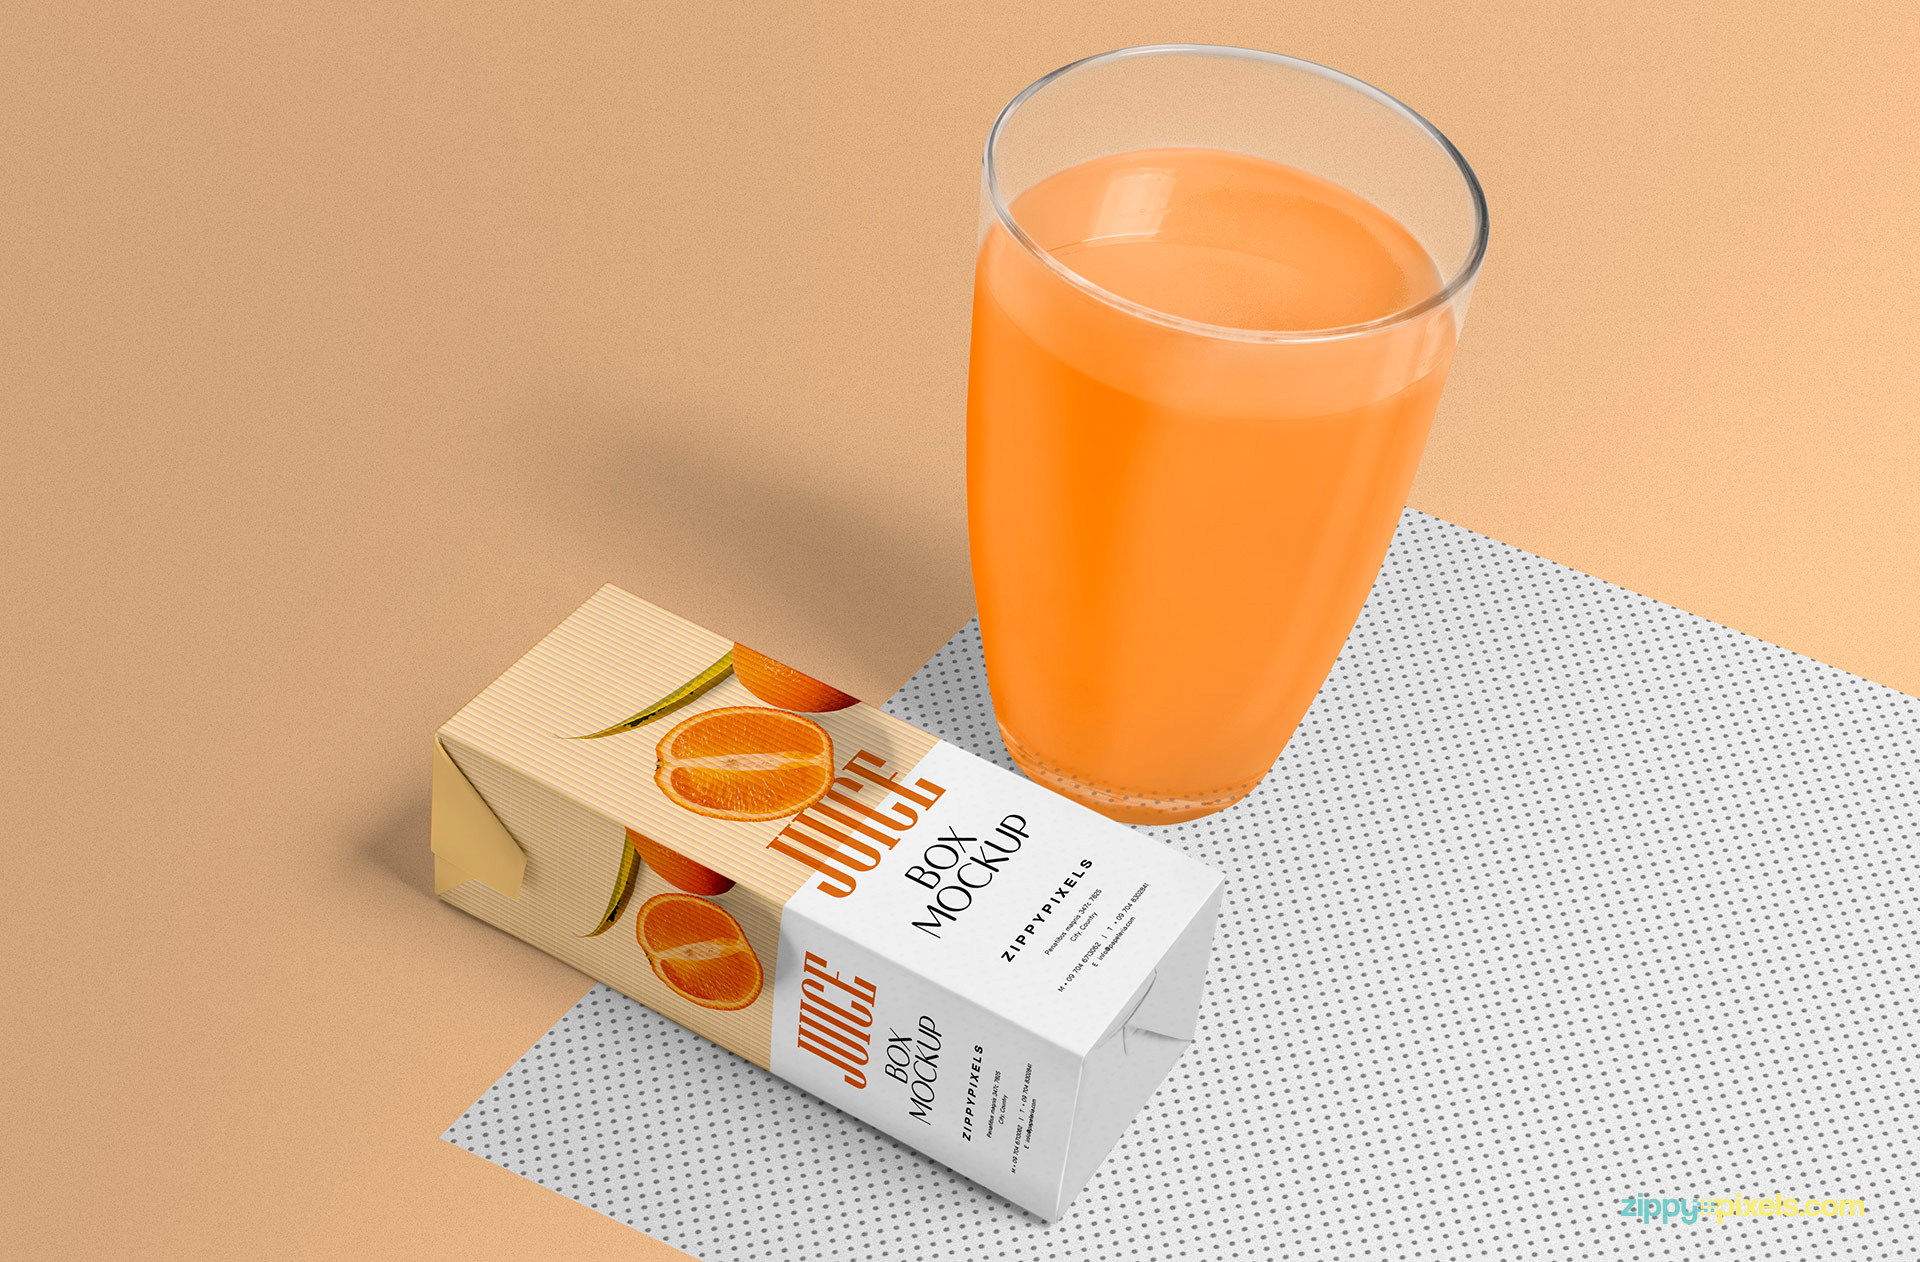 Realistic juice box with a glass of orange juice.